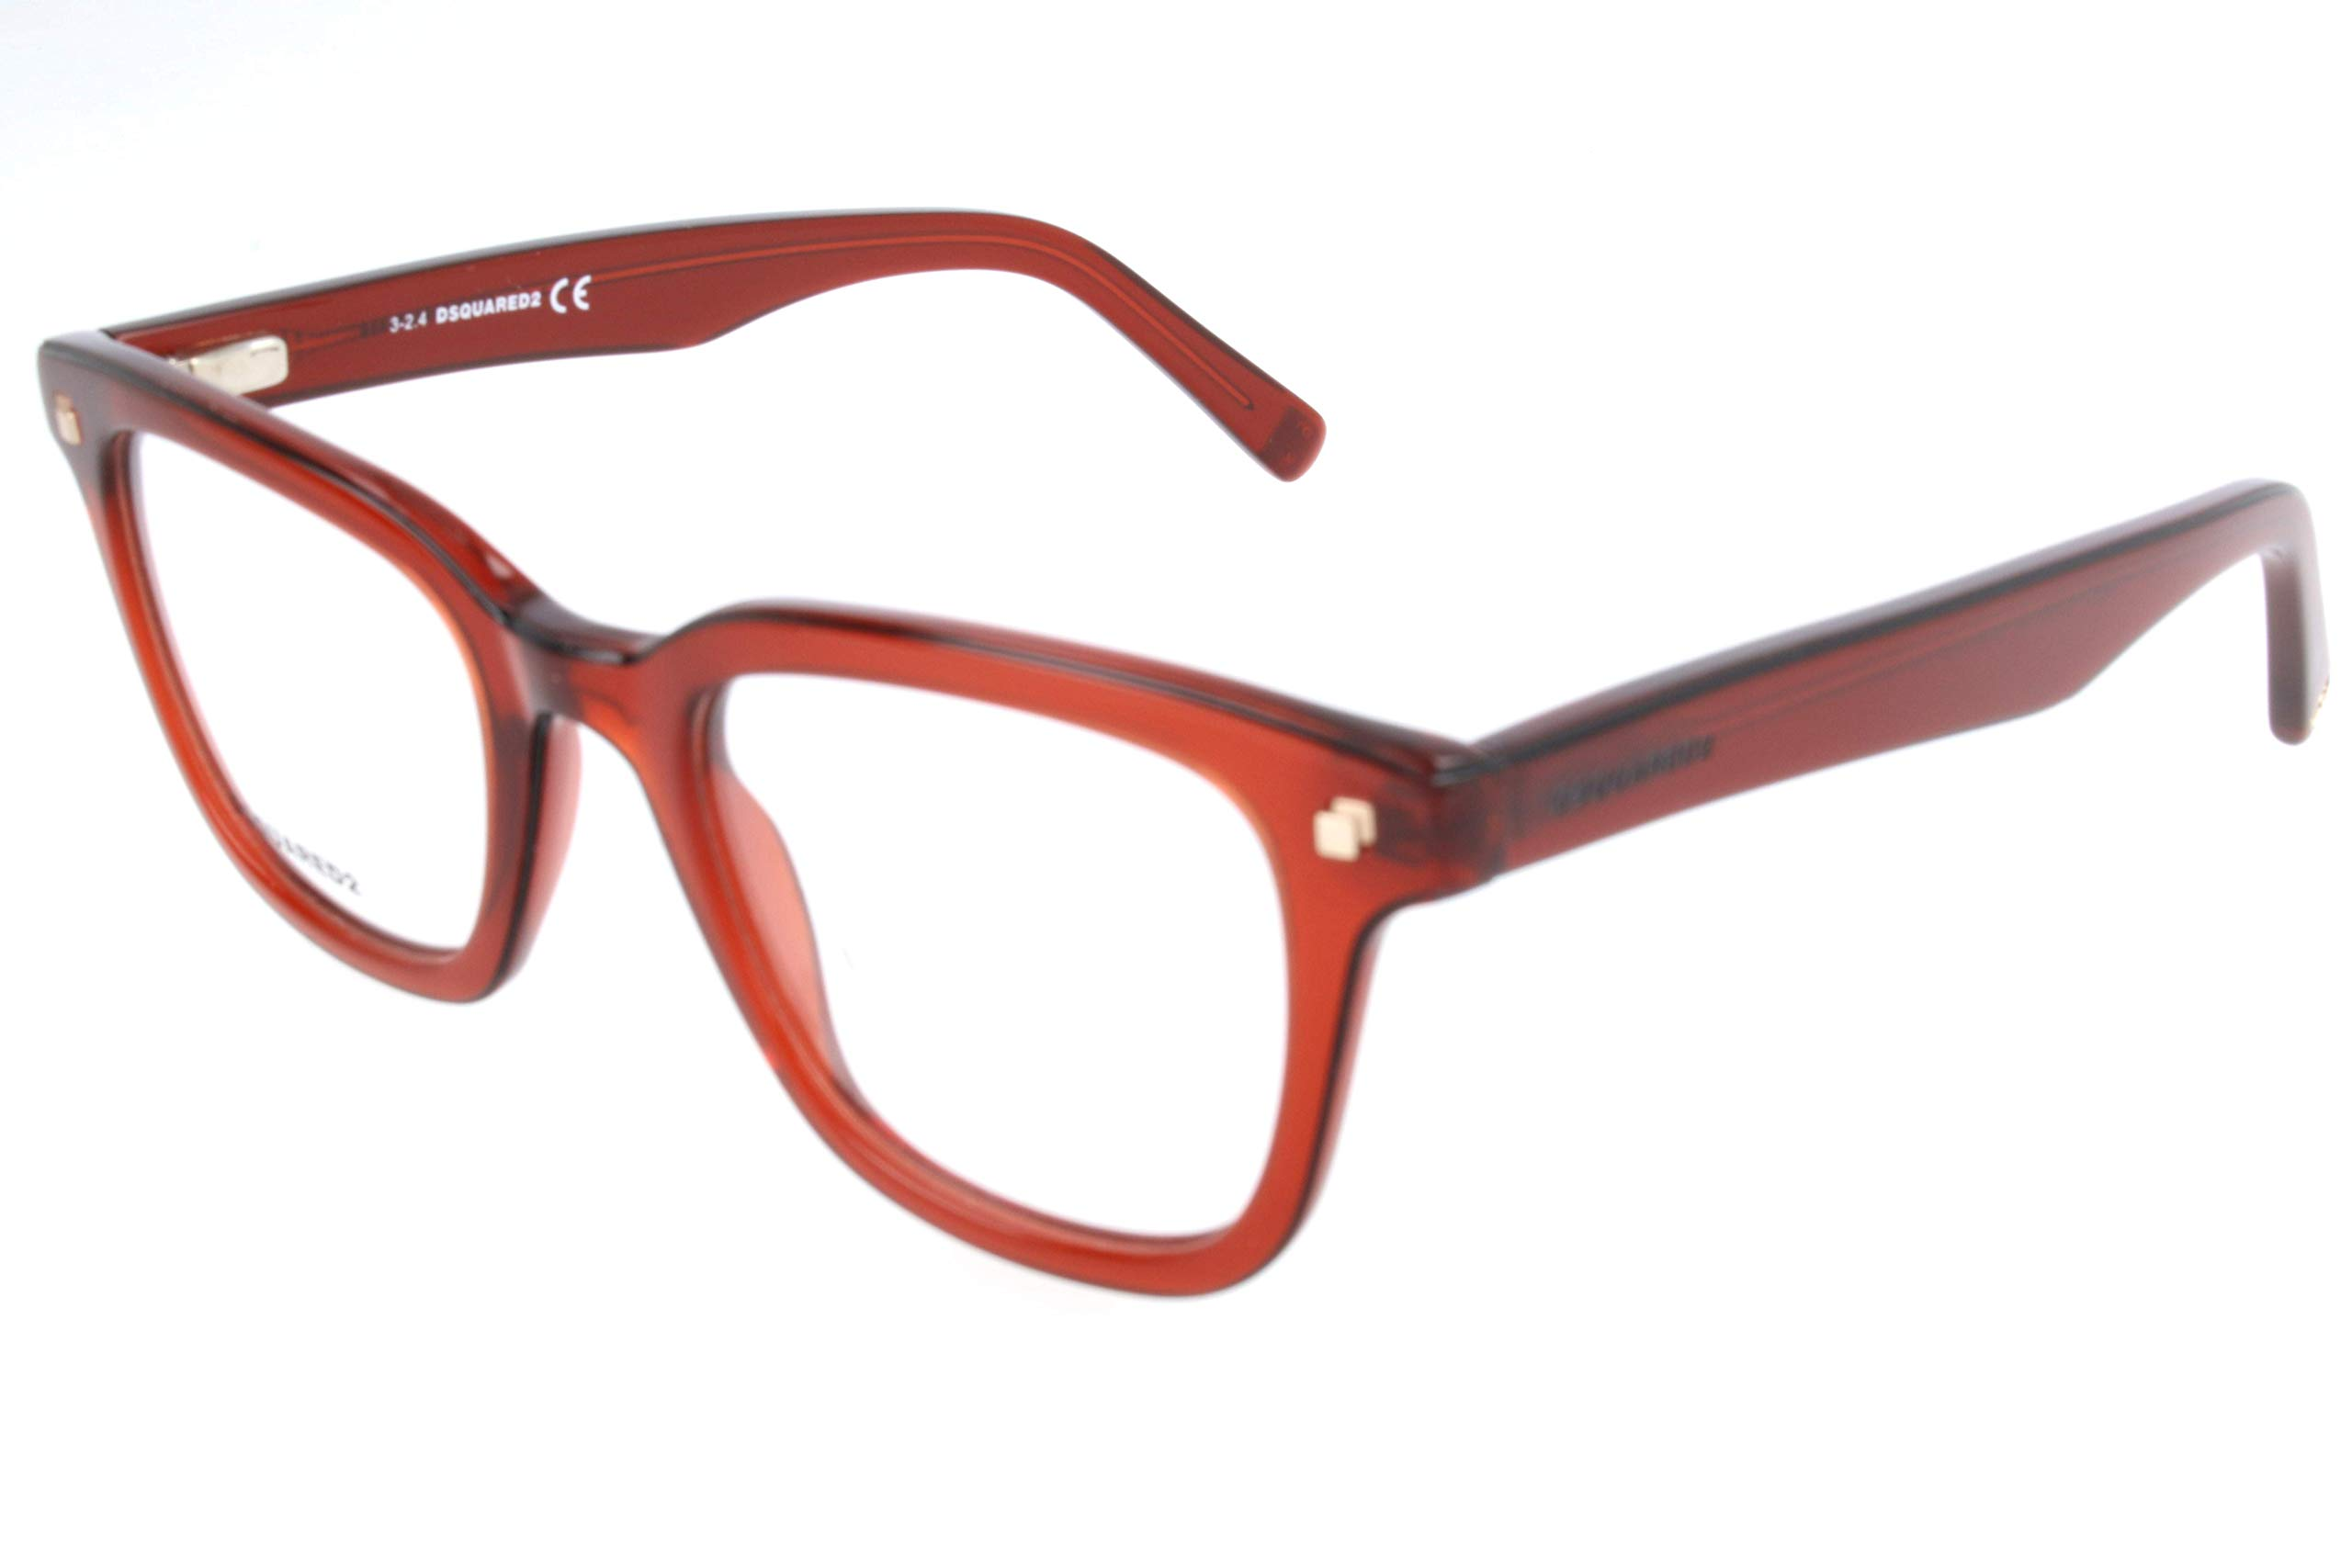 Homme Brille De 0 Lunettes Dq5165 Dsquared2 Dsquared 090 49 SoleilRougered49 IYb6f7gyv